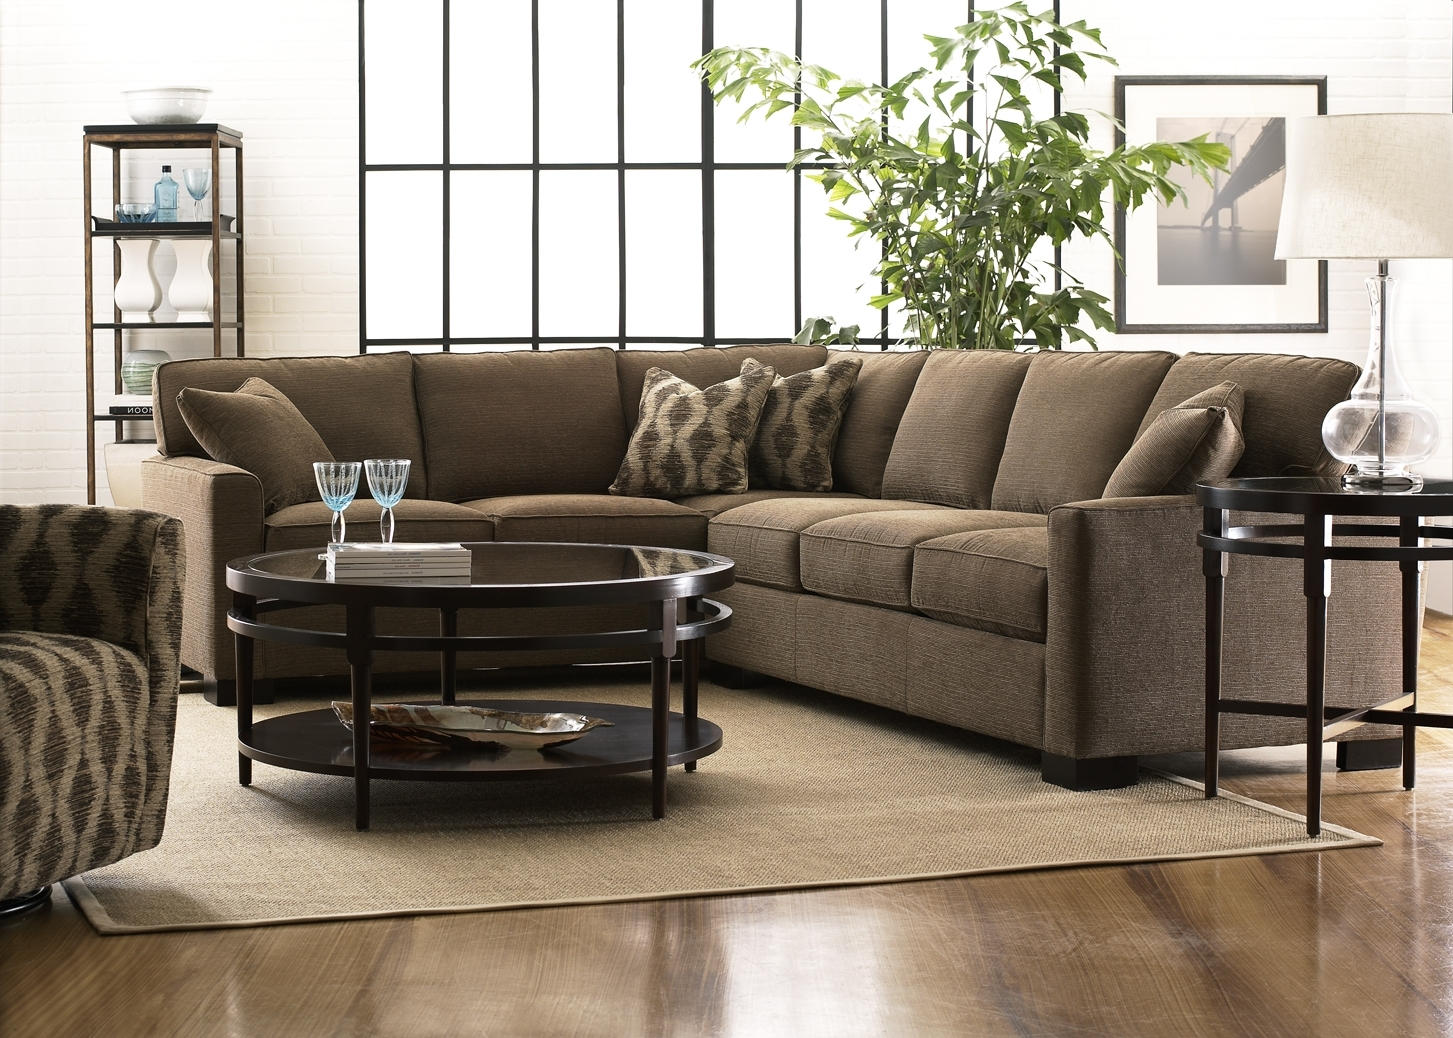 Most Current Sectional Sofas For Small Living Rooms With Regard To Dining Room Furniture Small Spaces Apartment Sized Furniture (View 9 of 20)